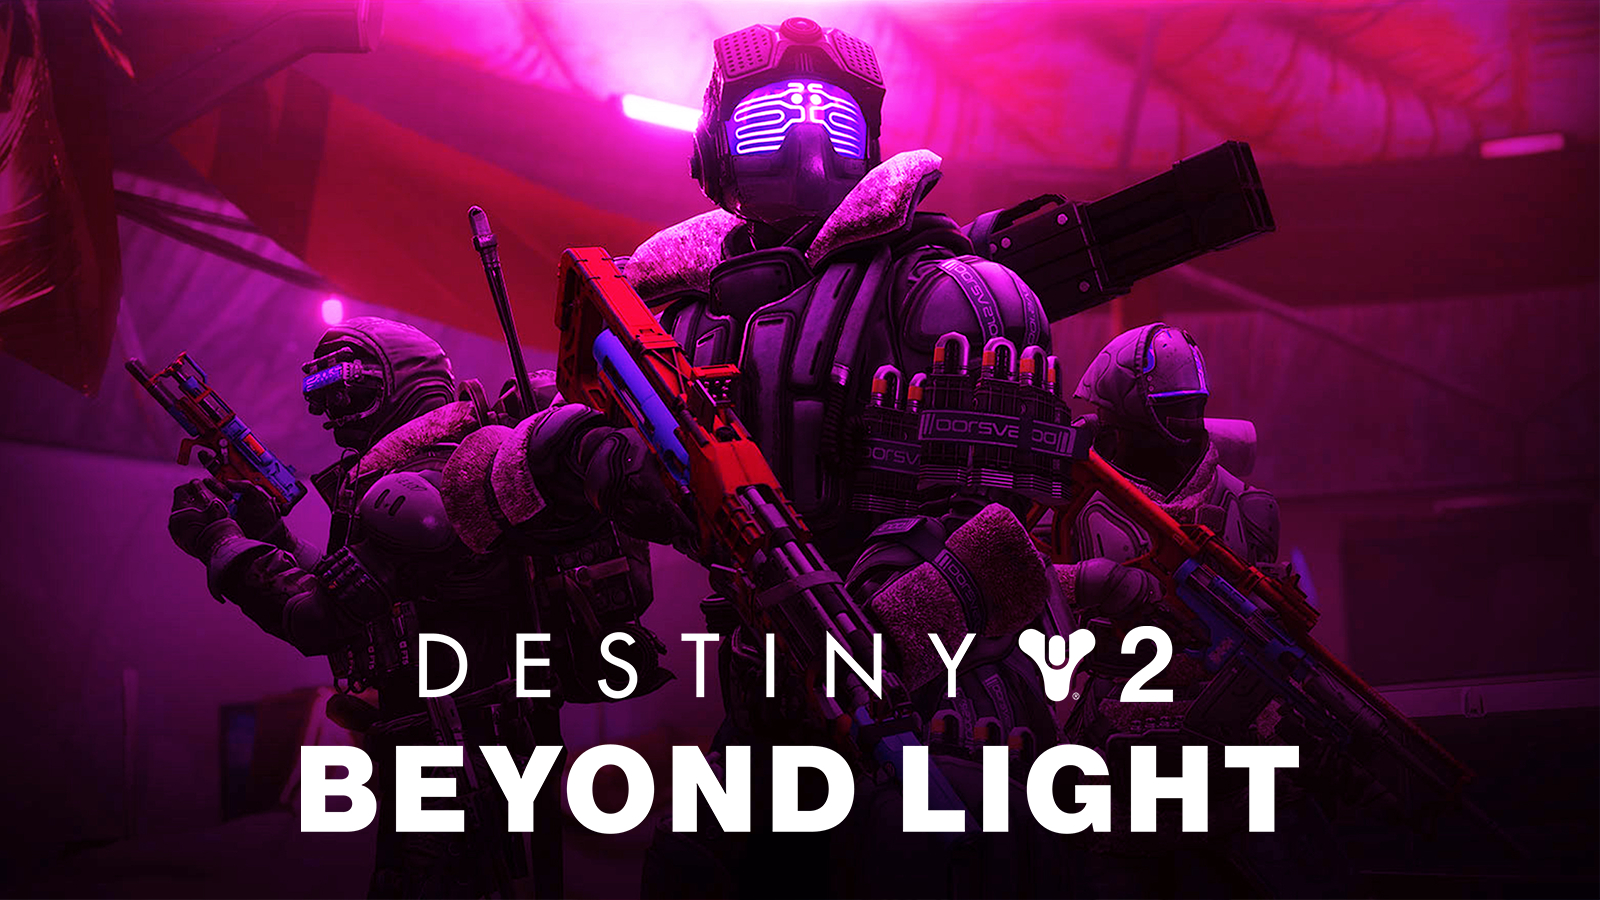 Three Destiny 2 Guardians pose with Splintered Triumph titles in Beyond Light.